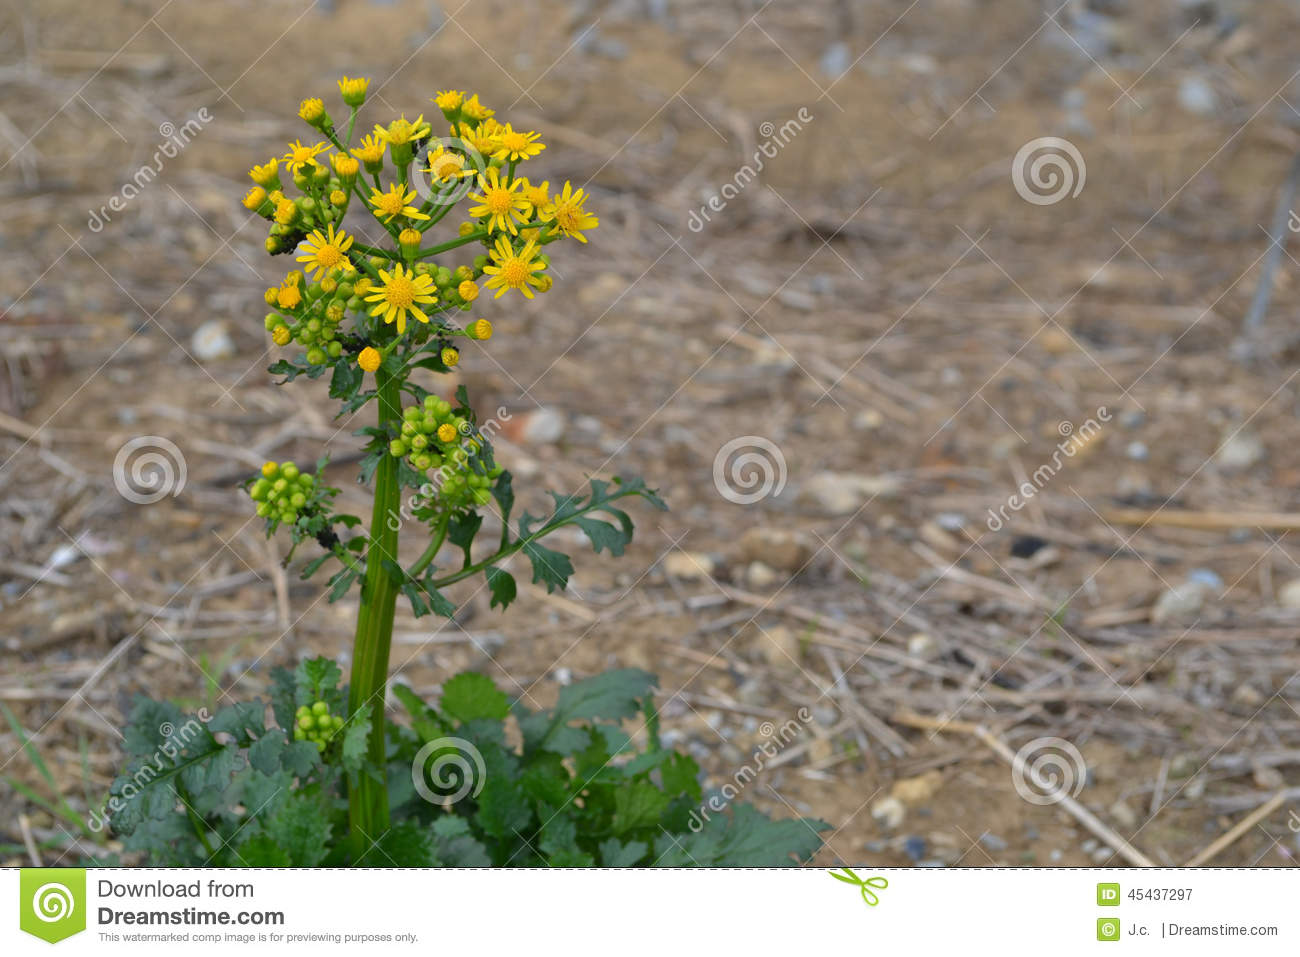 Butterweed clipart #18, Download drawings